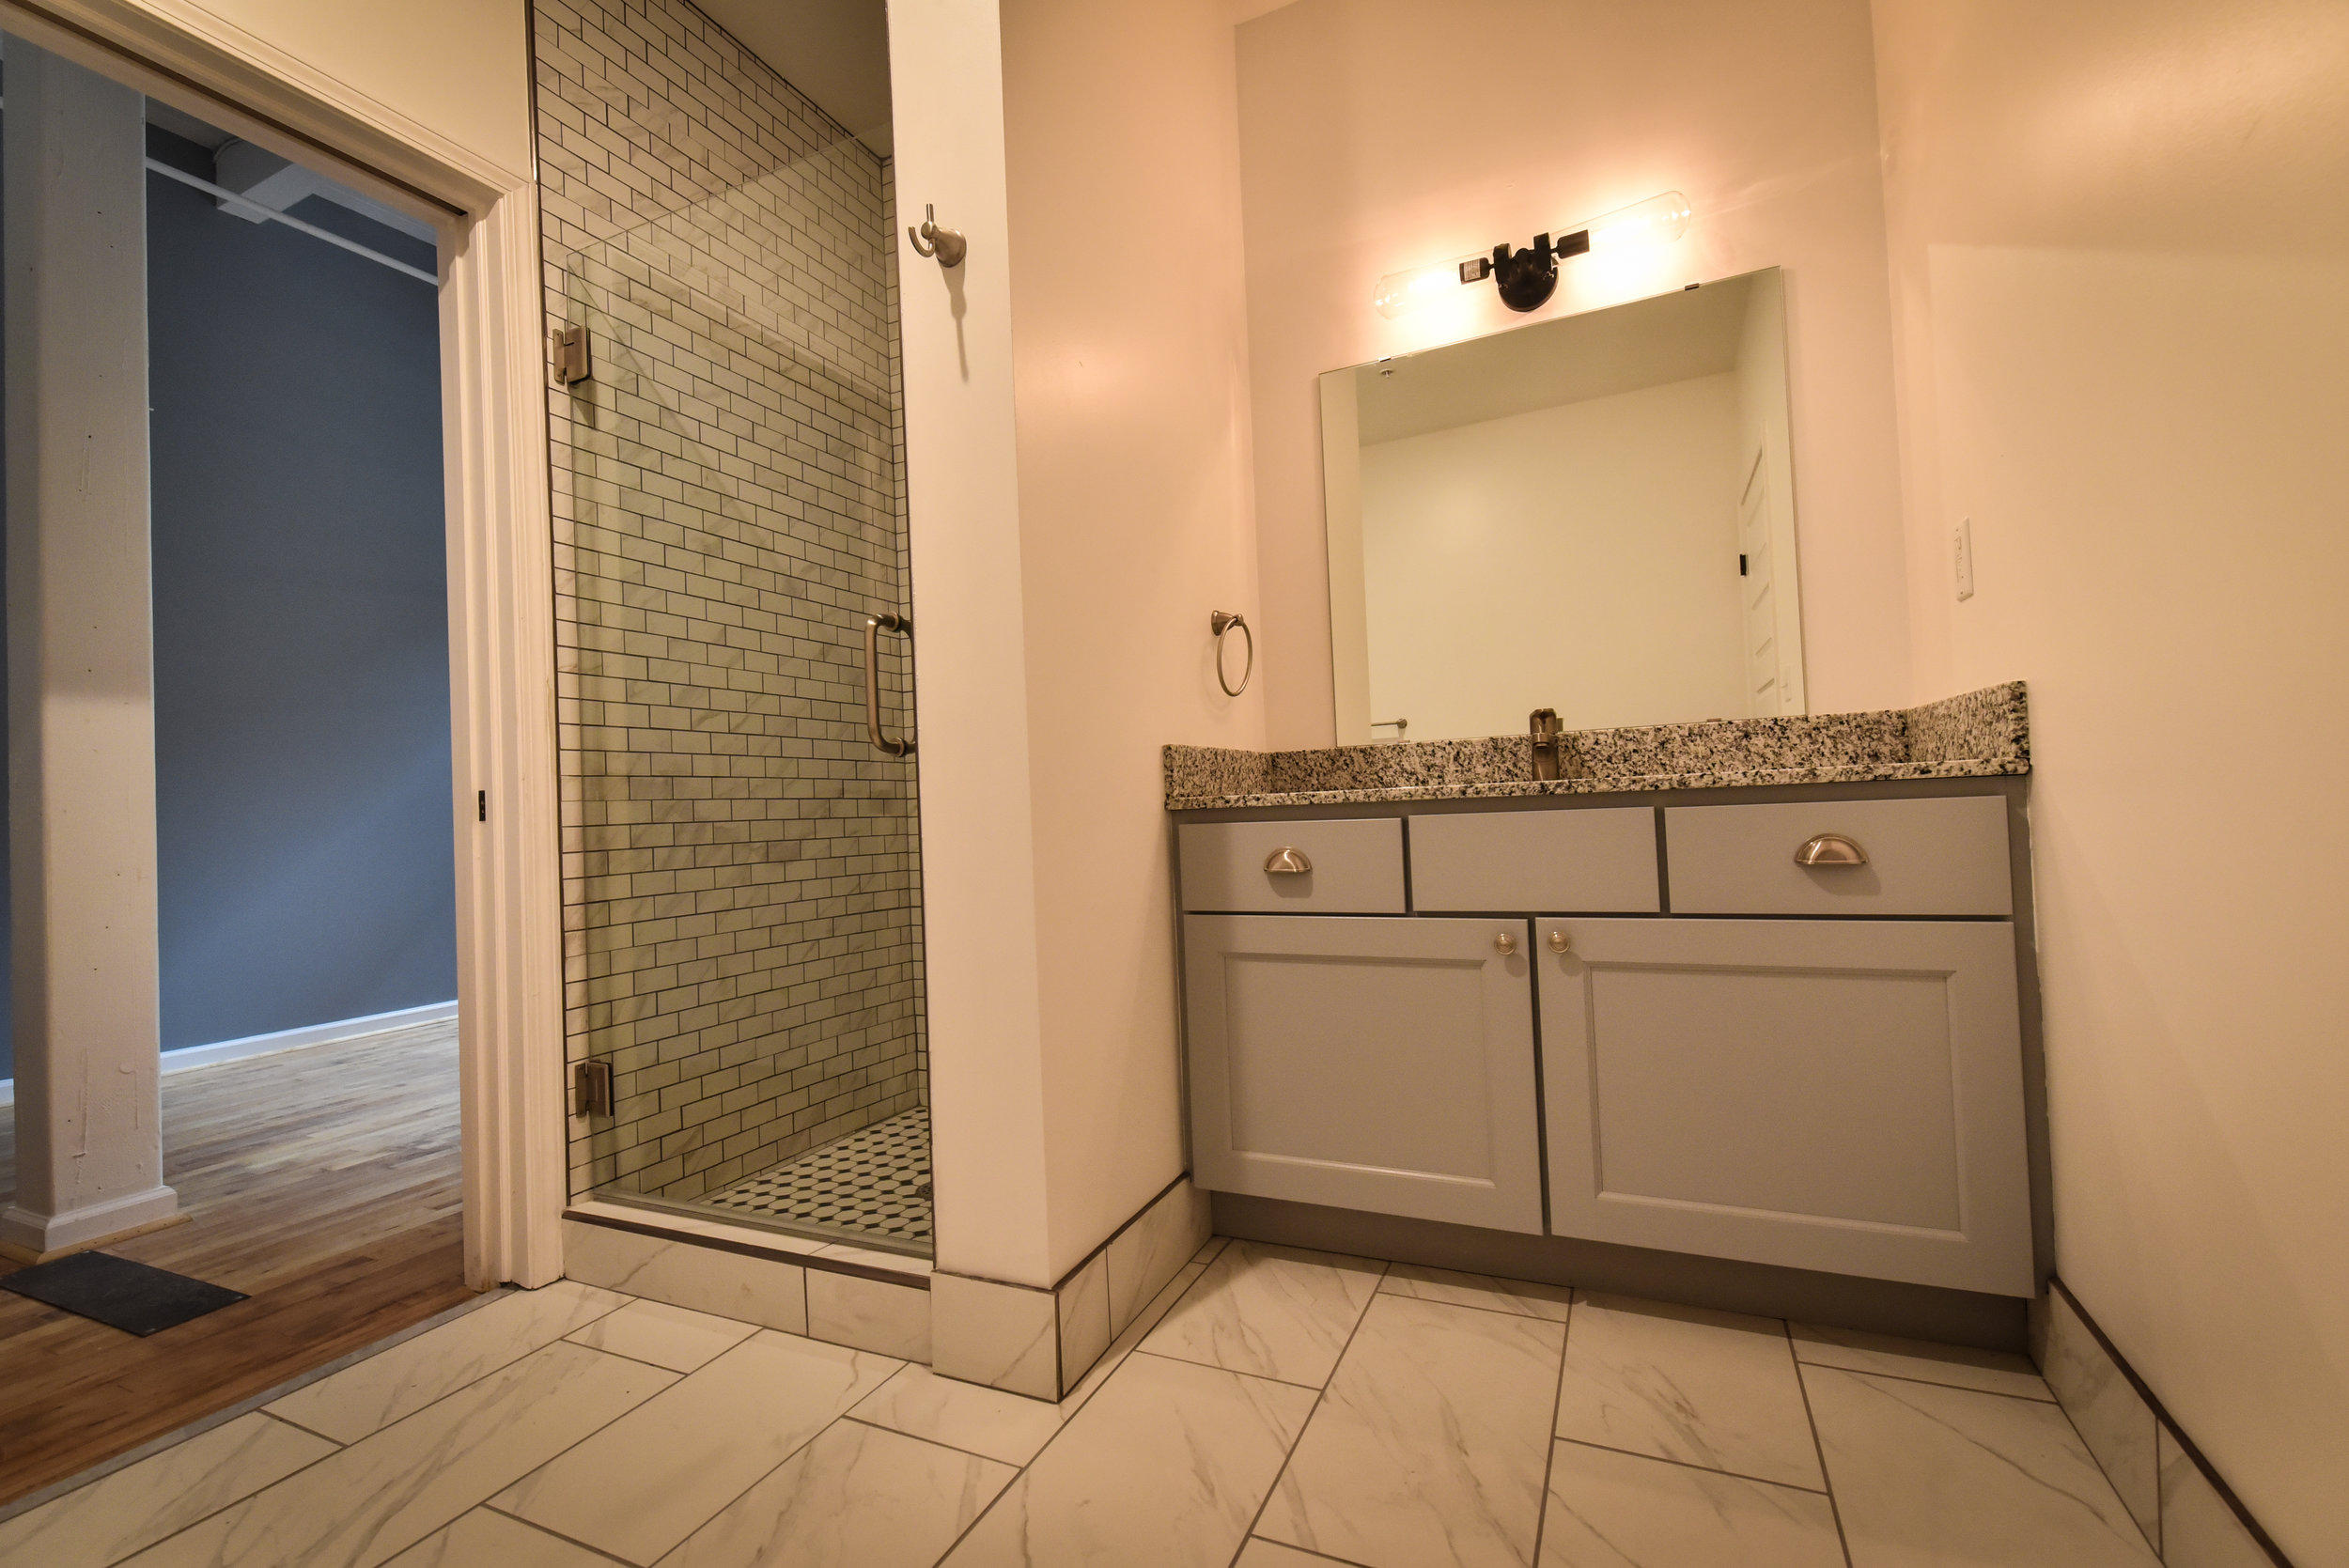 luxury-lofts-rochester-ny-bathroom-new.jpg